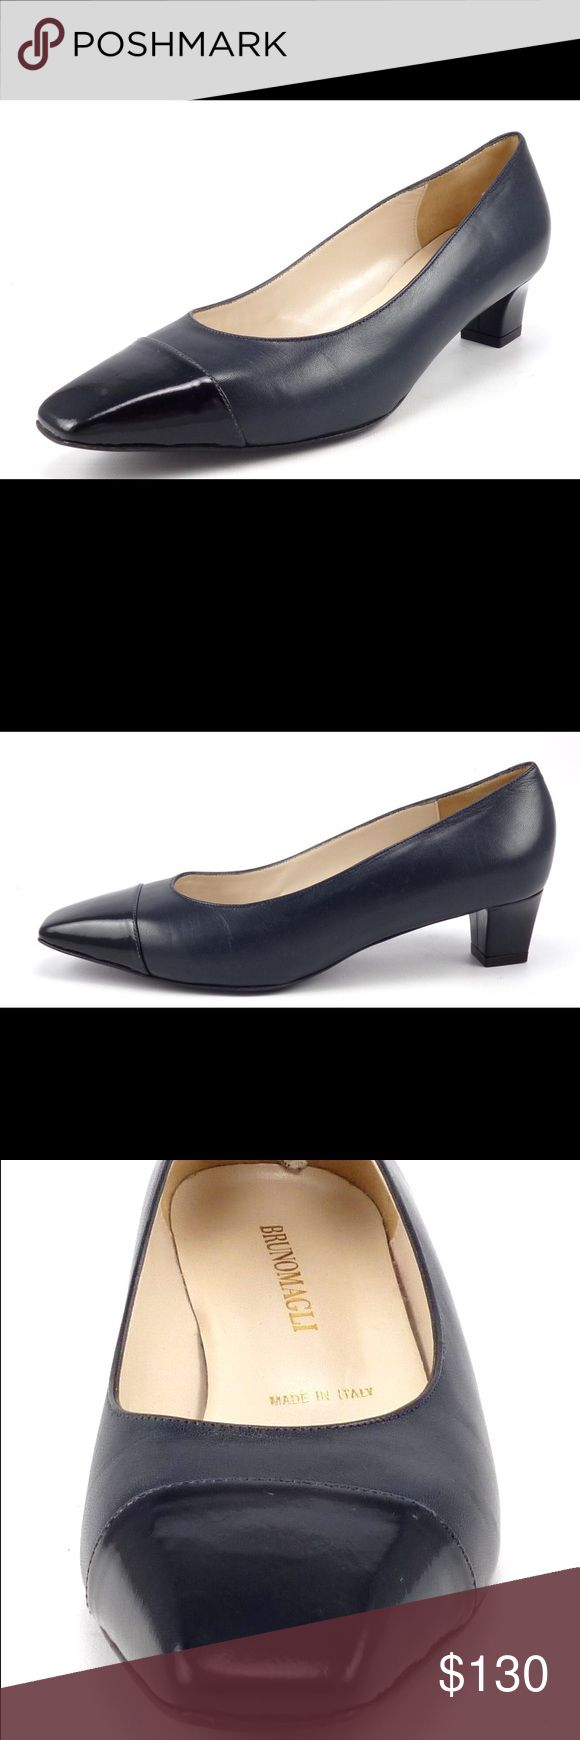 """Bruno Magli Women's Grey Pumps NWOT Size 8.5 NWOT Bruno Magli Leather Women's Grey Pumps. Leather uppers with patent leather cap toe, leather lining and sole. Made in Italy. Approx. Measurements: Inside: 10"""" Outside: 10.25"""" Width: 3.25"""" Heel: 1.25 There are two small marks in the bottom of one shoe from the retailer to prevent return to the department store. Please feel free to ask any questions. Sorry no trades. 102230 Bruno Magli Shoes Heels"""